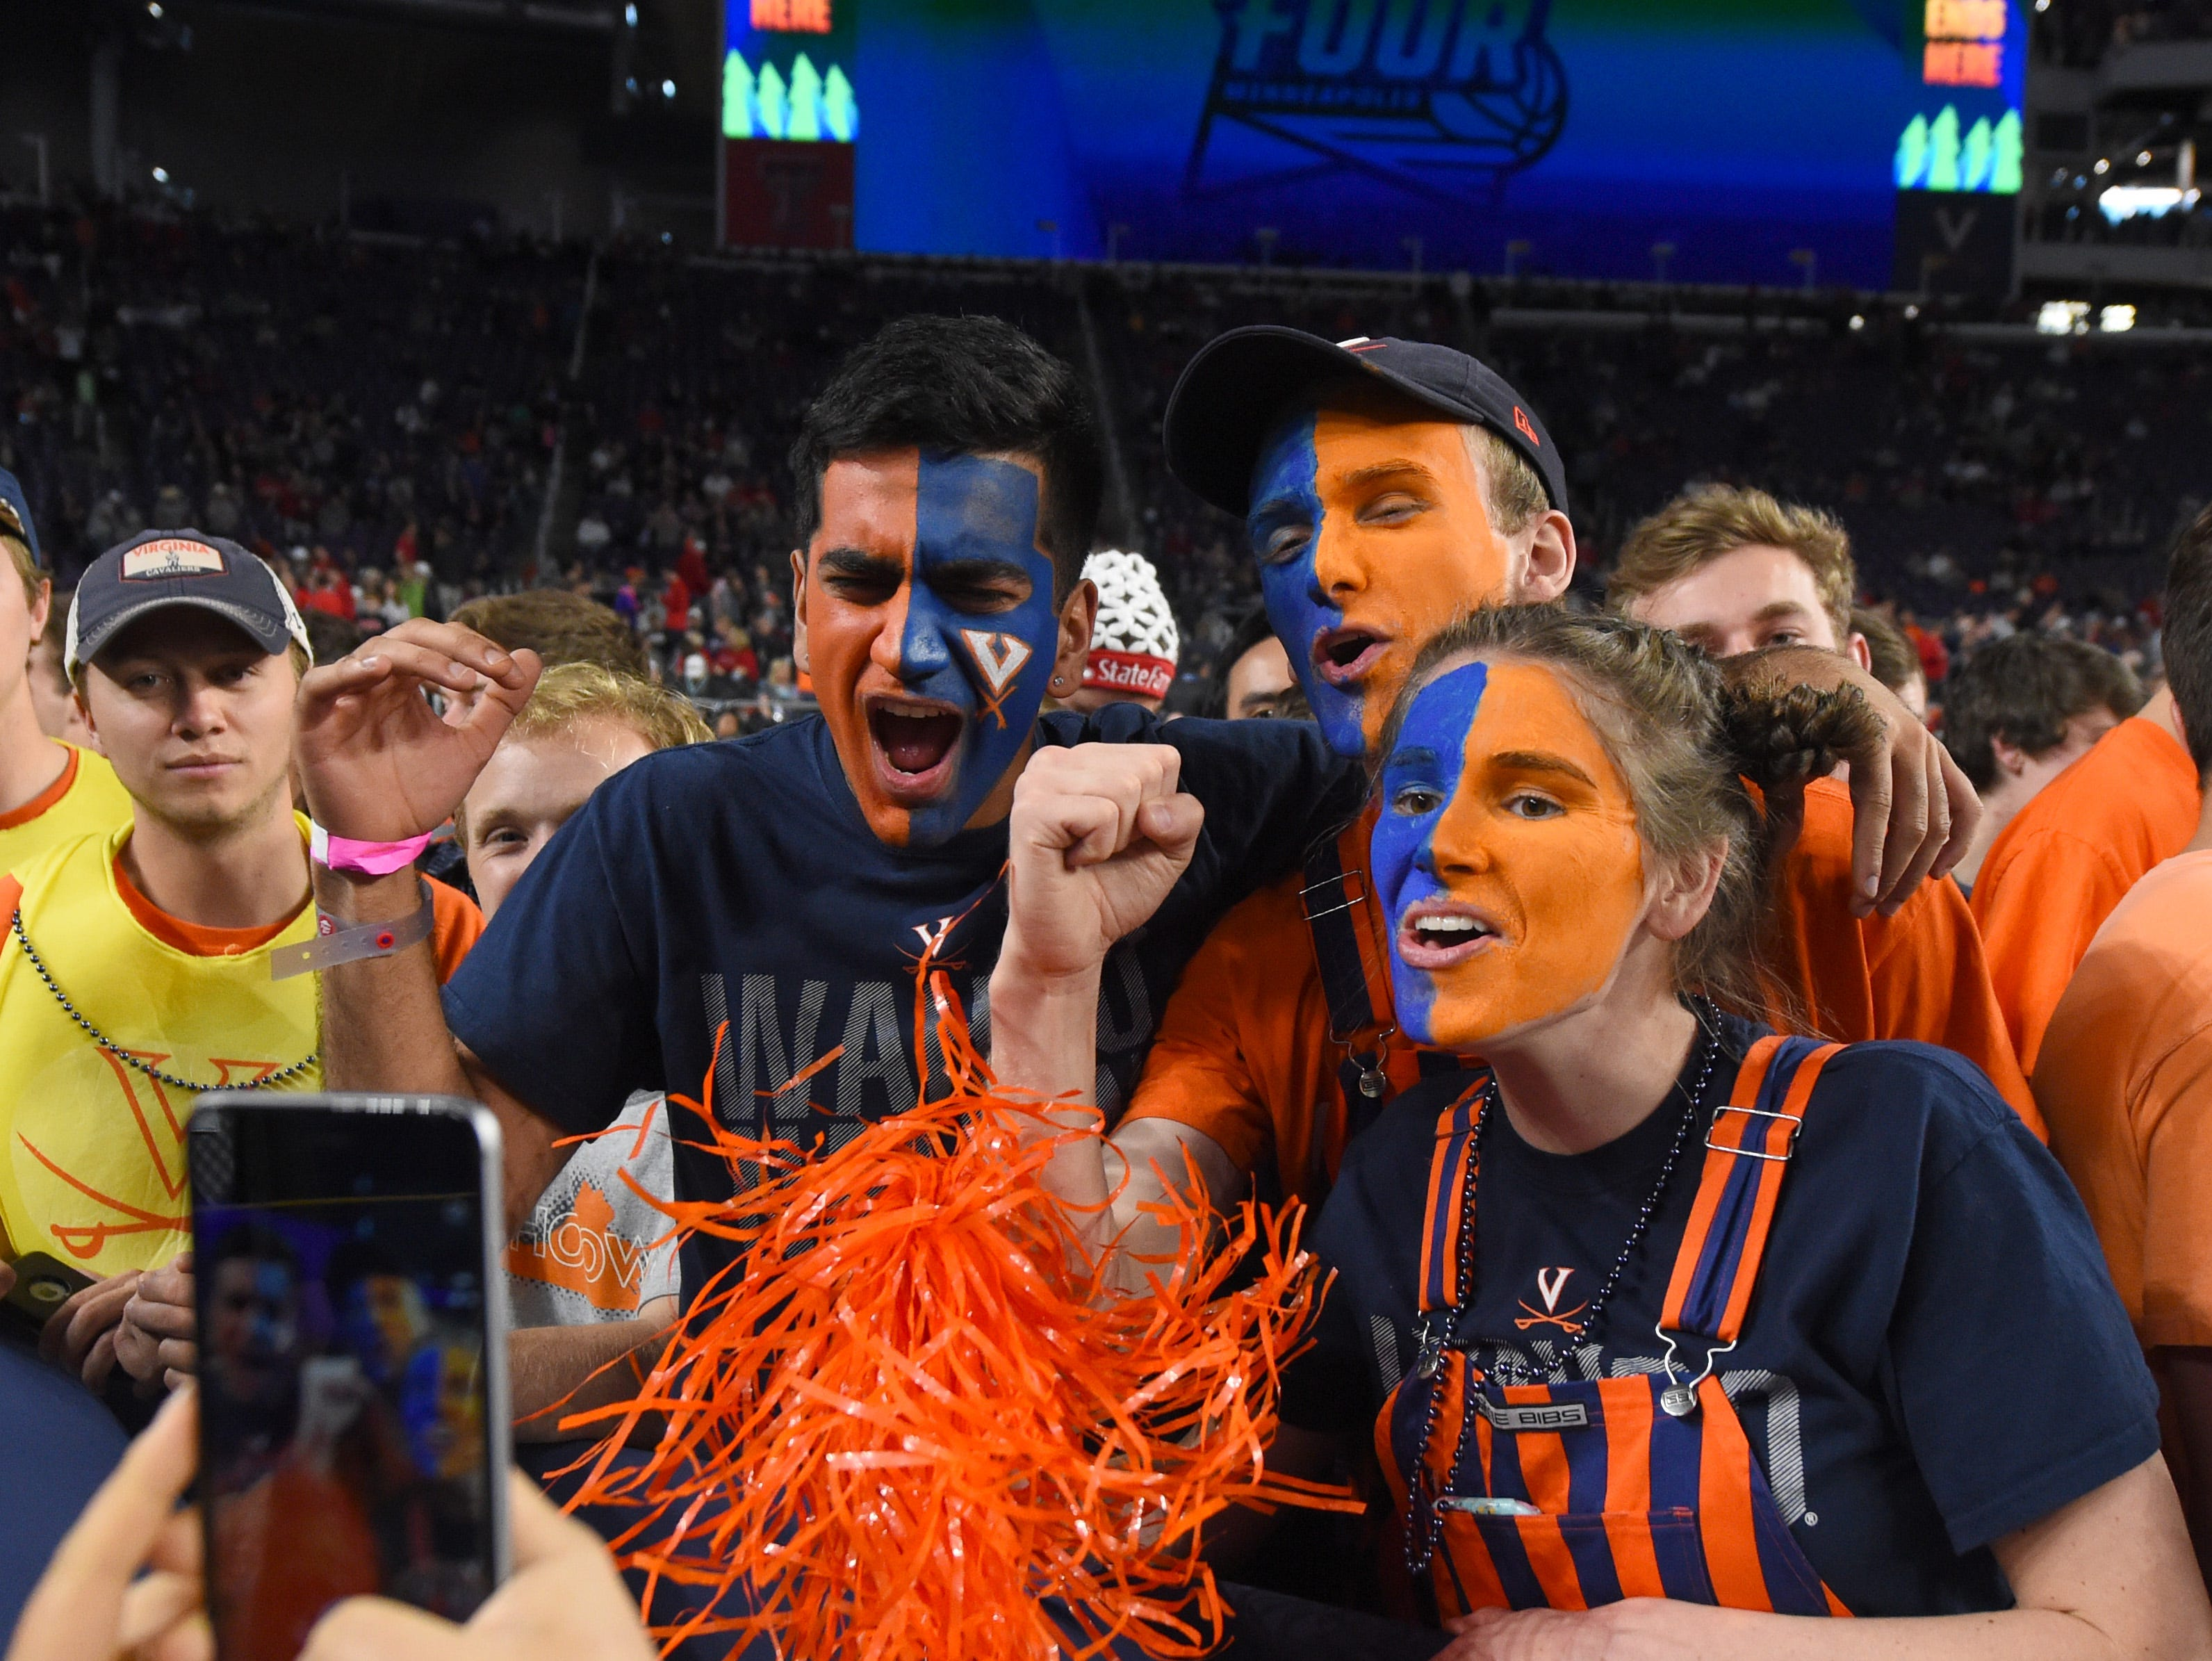 Apr 8, 2019; Minneapolis, MN, USA; Virginia Cavaliers fans prior to facing the Texas Tech Red Raiders in the championship game of the 2019 men's Final Four at US Bank Stadium. Mandatory Credit: Robert Deutsch-USA TODAY Sports